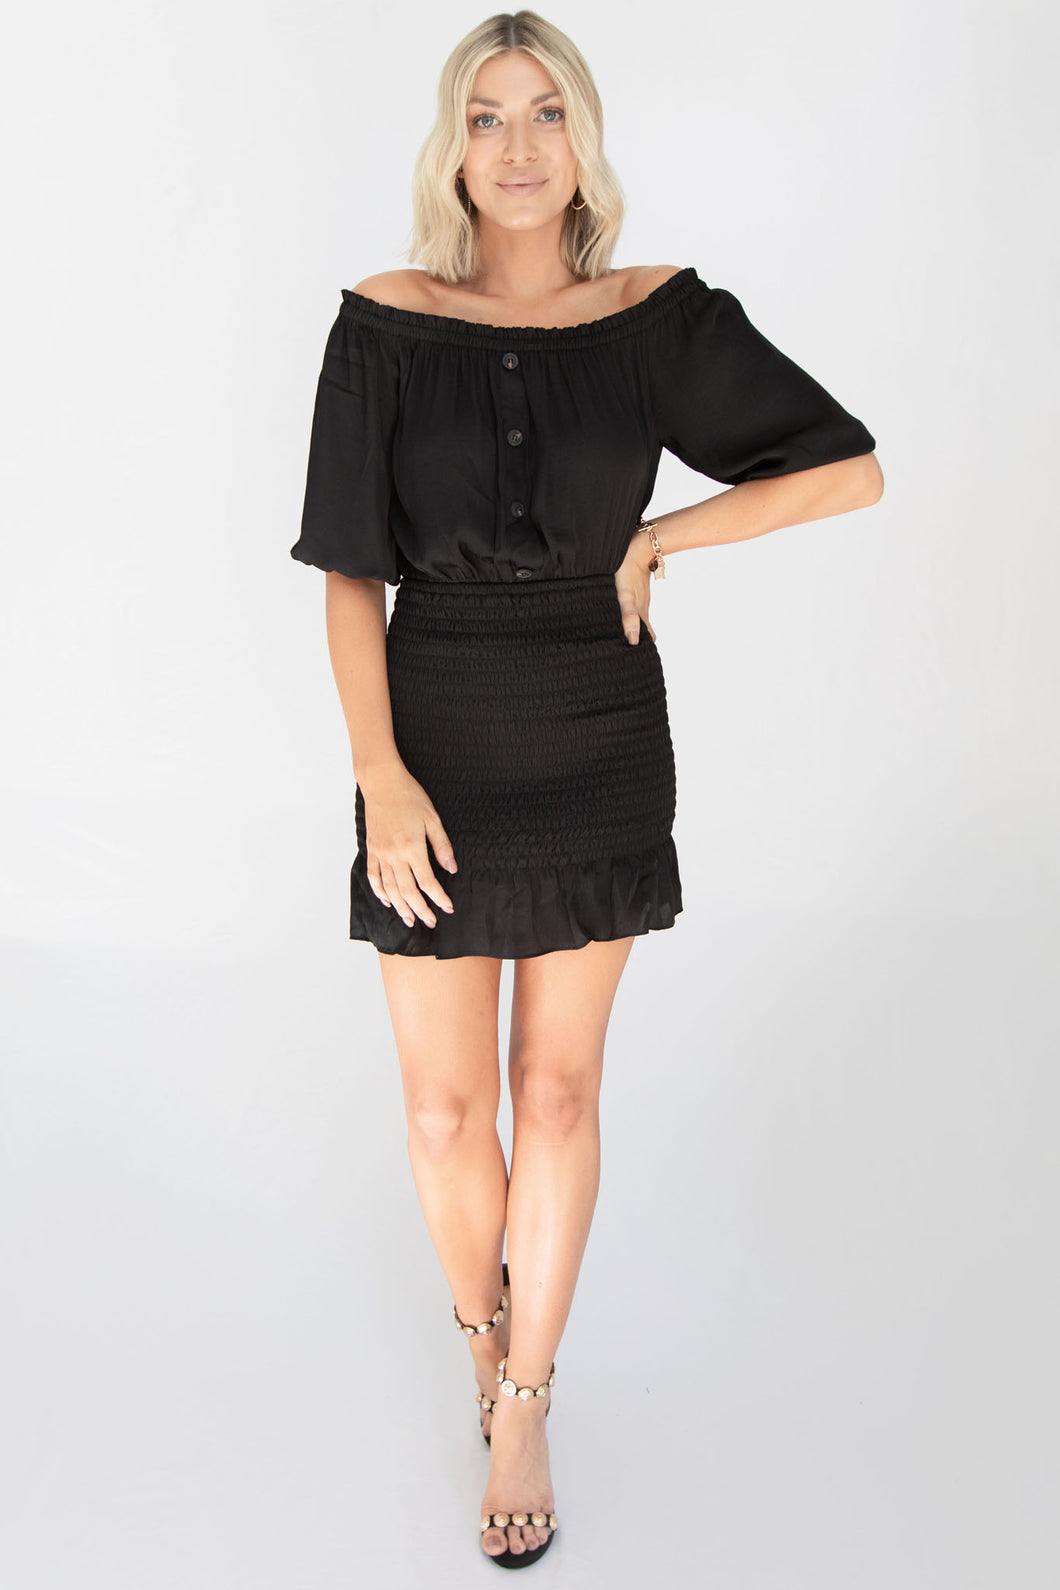 French Kiss Off Shoulder Smocked Skirt Dress - Black